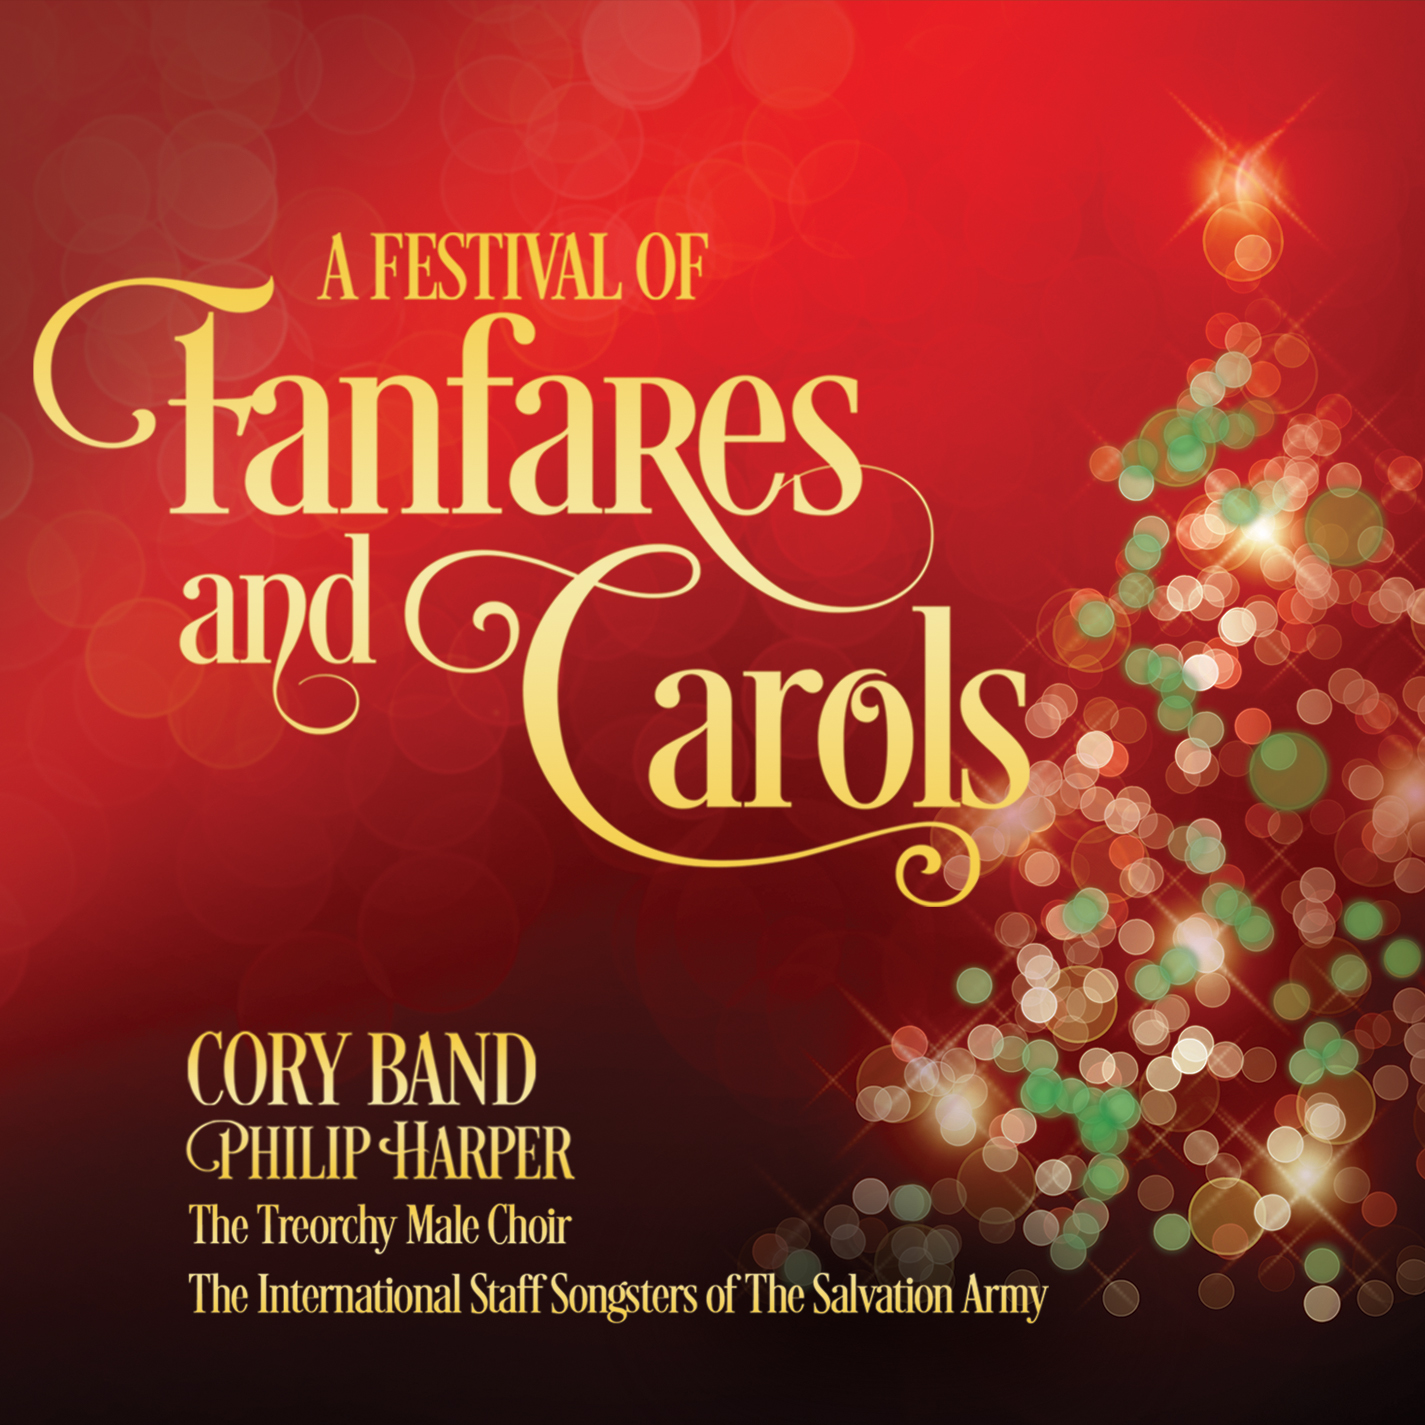 A Festival of Fanfares and Carols - Download